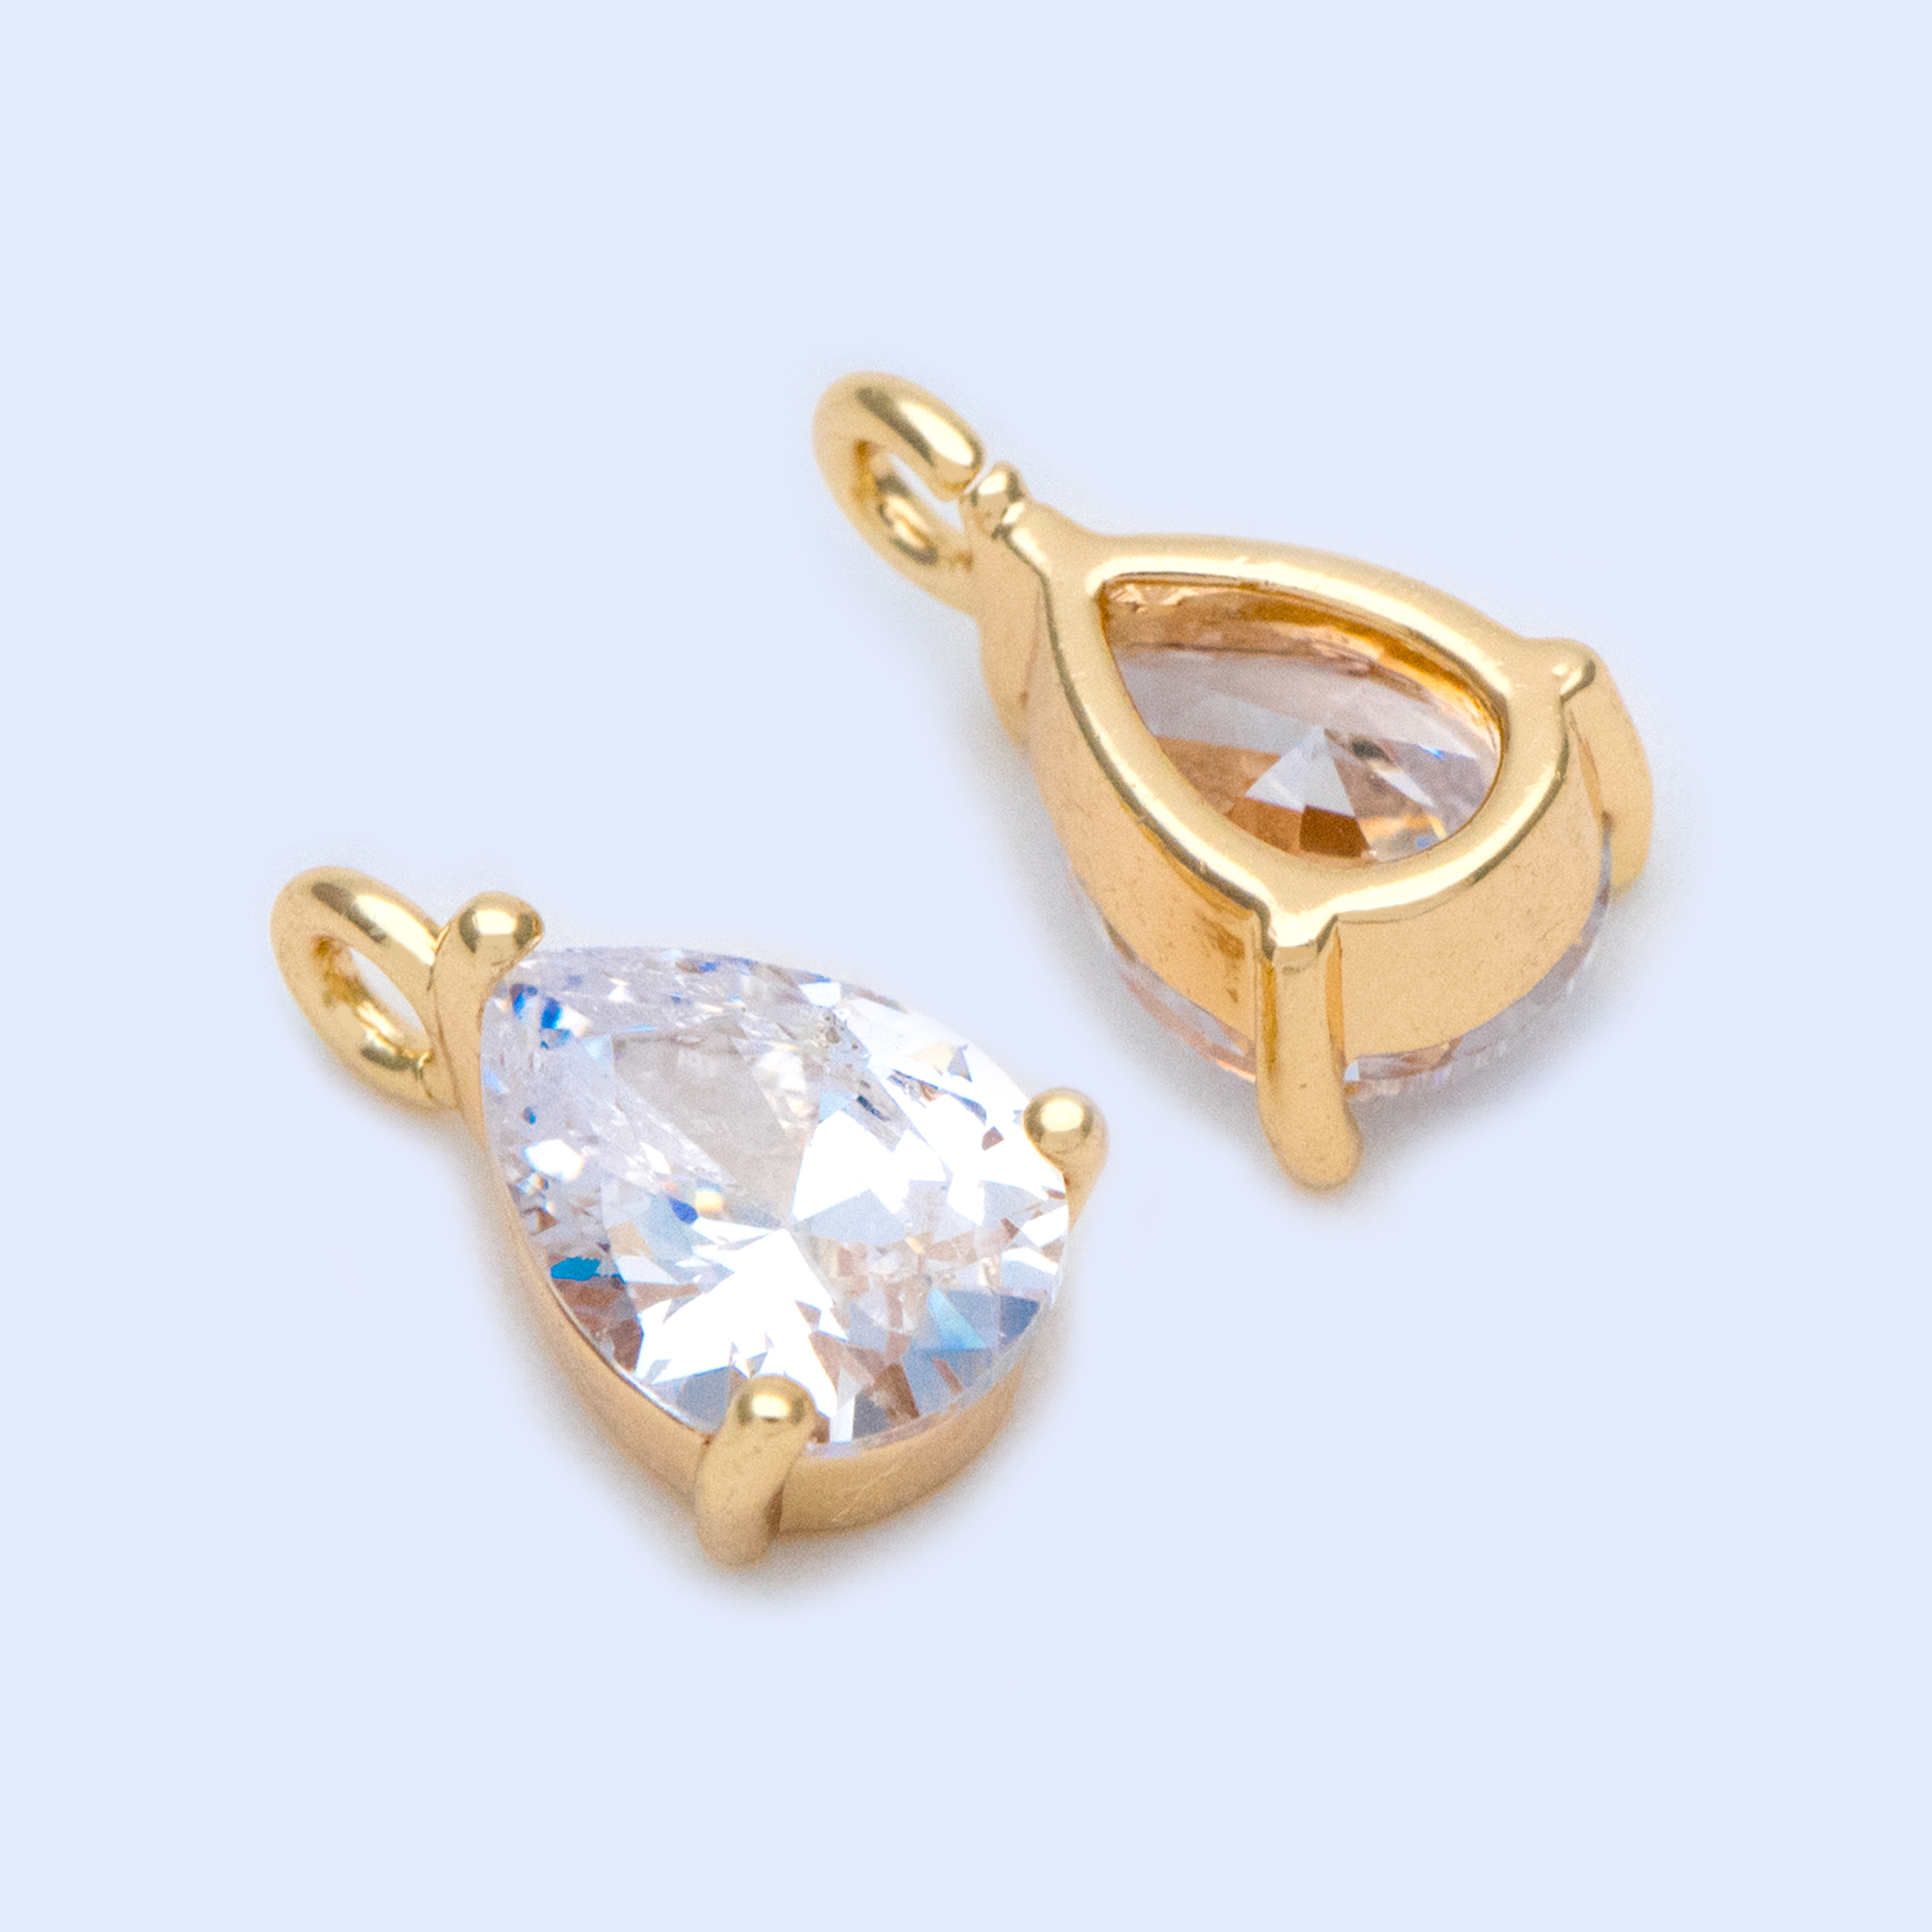 10pcs CZ Paved Gold Teardrop Charms 11x7mm, Gold Plated Brass Drop Pendants (GB-1151)